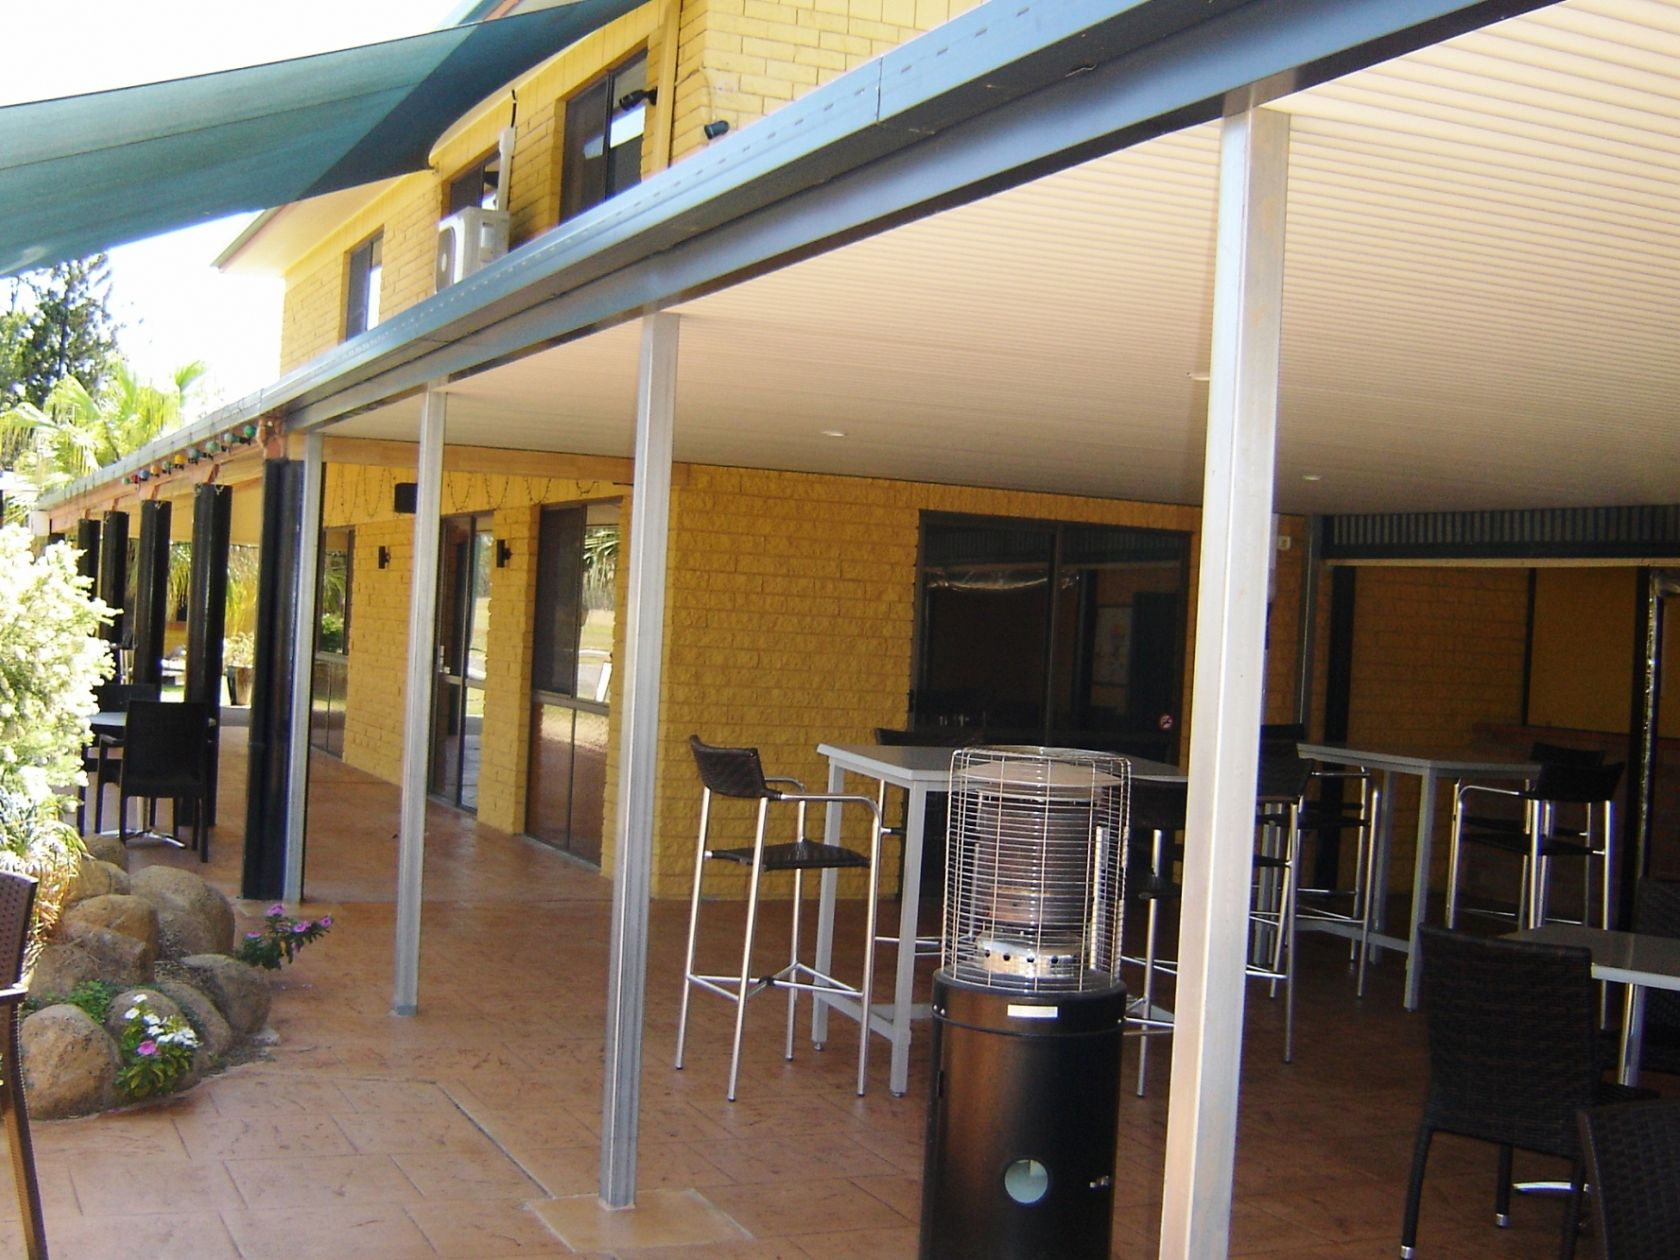 Best Motel Leasehold in Town - Fully Refurbished Top to Toe